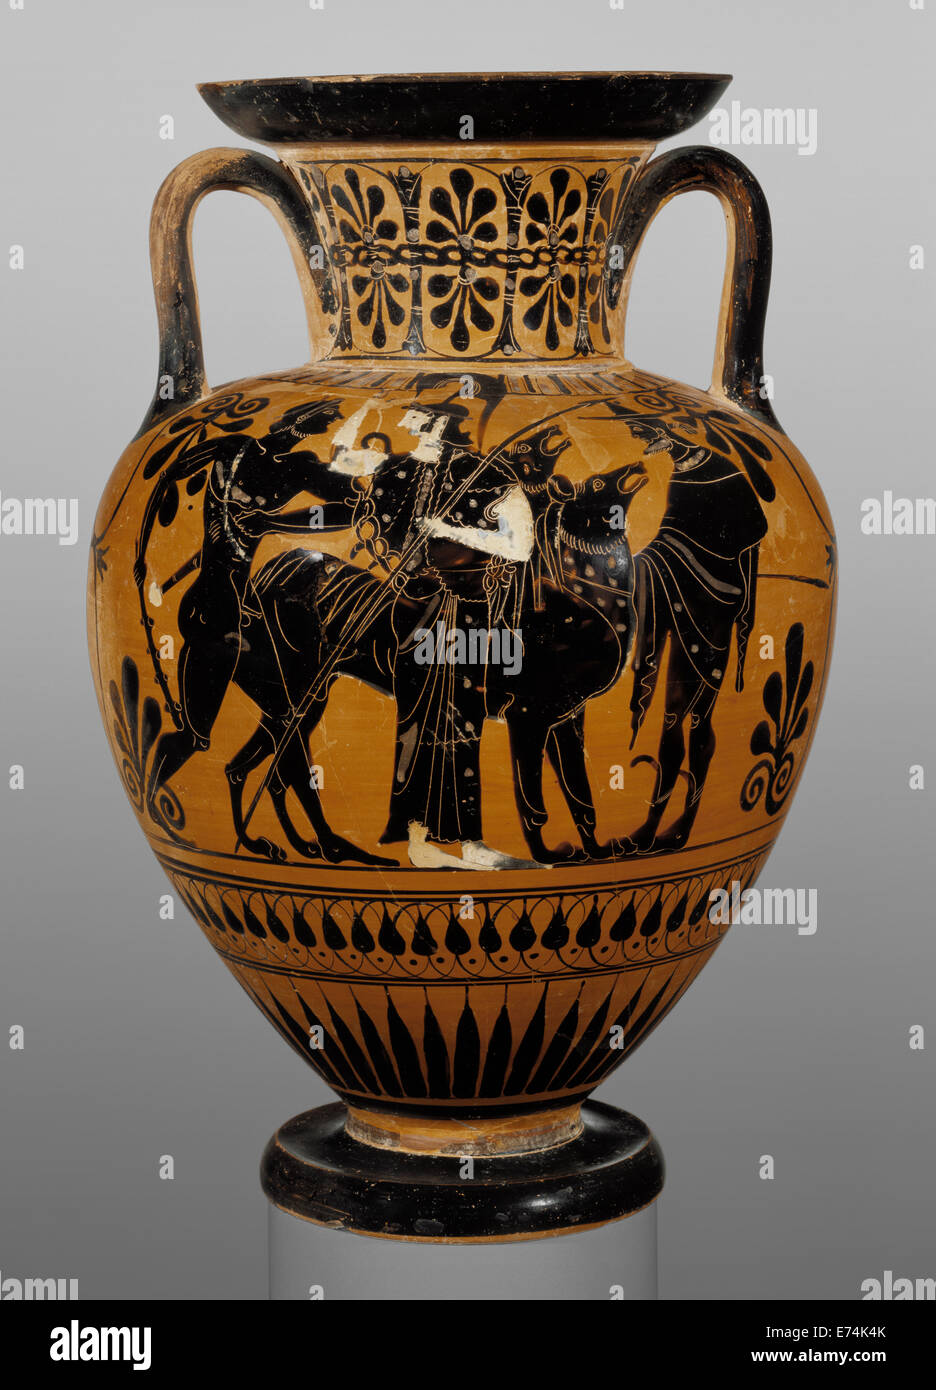 Attic Black-Figure Neck Amphora; Attributed to Leagros Group Greek (Attic) active 525 - 500 B.C.; Athens Greece & Attic Black-Figure Neck Amphora; Attributed to Leagros Group Greek ...